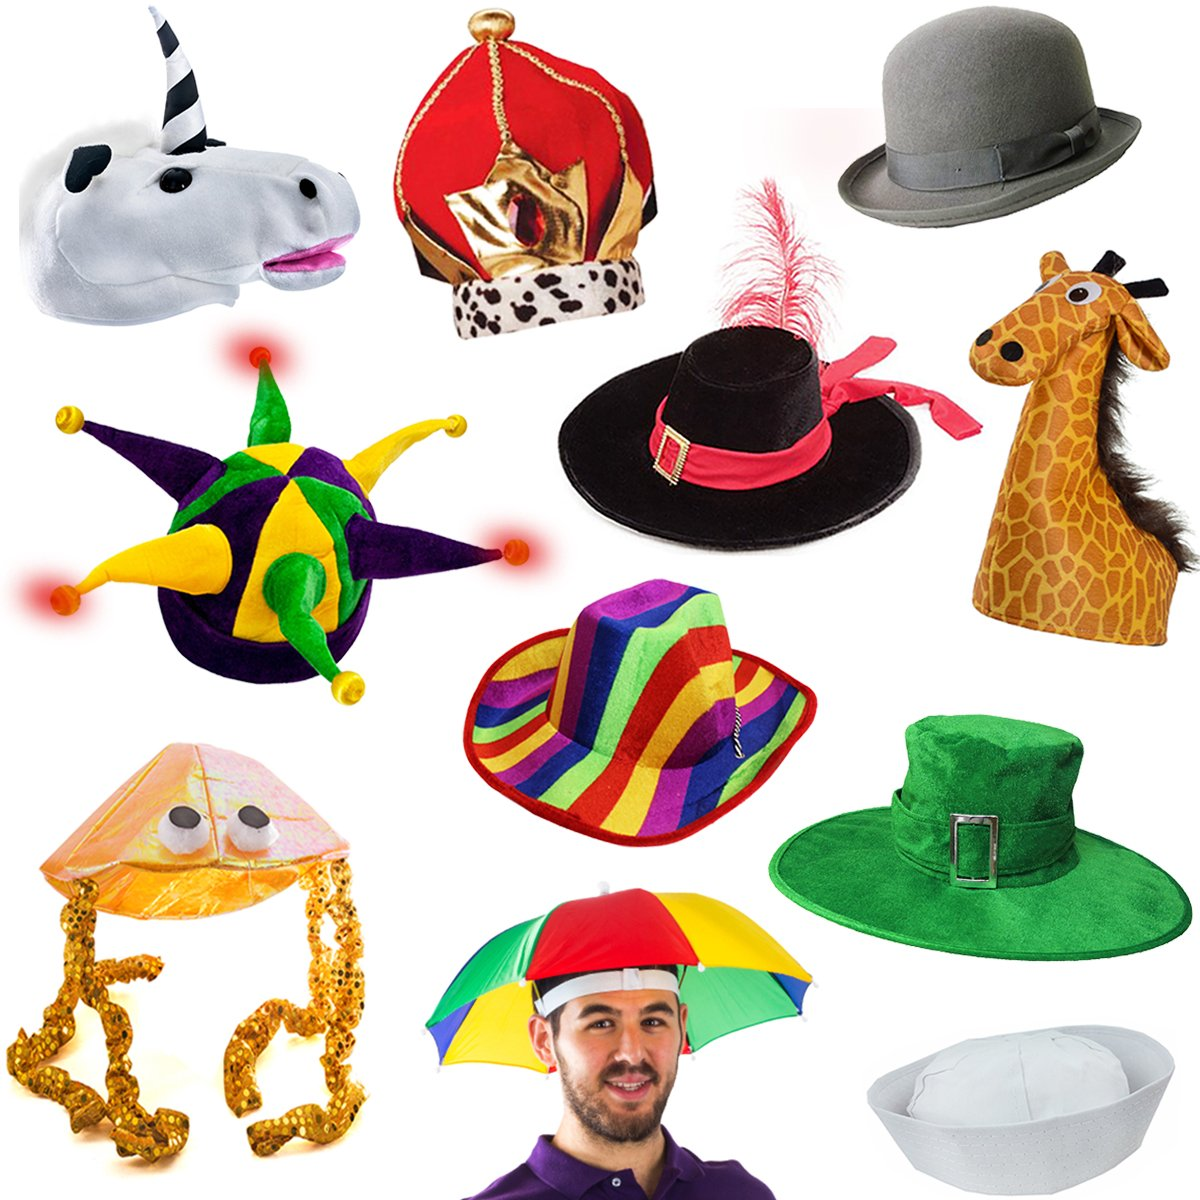 6 Assorted Dress Up Costume & Party Hats by Funny Party Hats (6 Adult Costume Hats) by Funny Party Hats